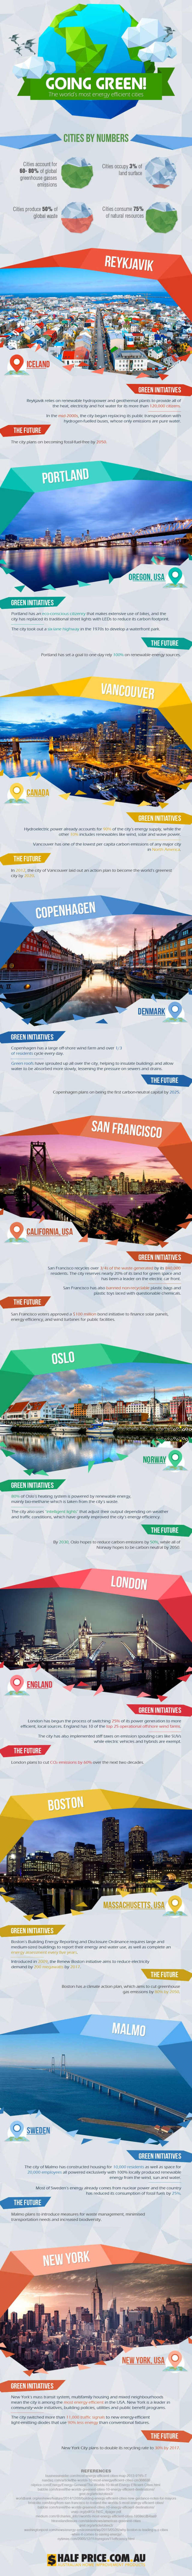 World's most Energy Efficient Cities- infographic